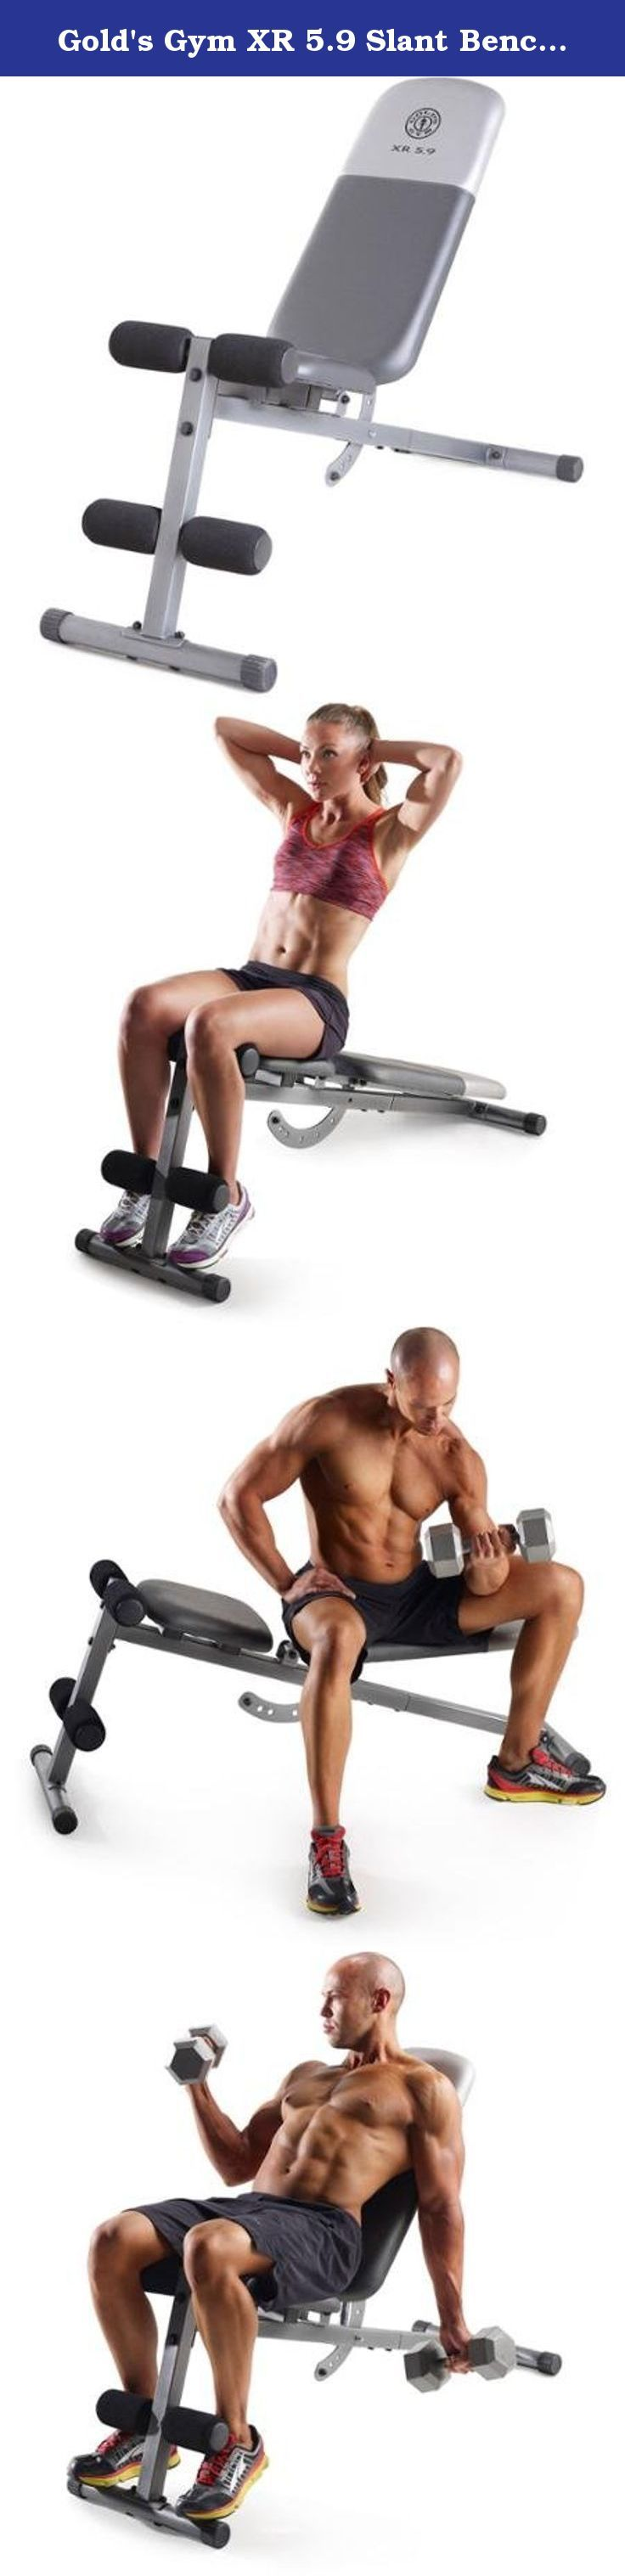 Gold's Gym XR 5.9 Slant Bench Multi-Position Weight Bench Adjusts to Incline, Decline or Flat. The Gold's Gym Utility Bench gives you chiseled abs and a powerful core. You can easily target your upper body or lower body for faster, more defined results. This multi position weight bench can be set at incline, decline, or flat positions. Simply adjust the bench to incline, decline or flat for specific exercises. The 4-roll leg lockdown helps you to work out your abs, obliques, and hip…